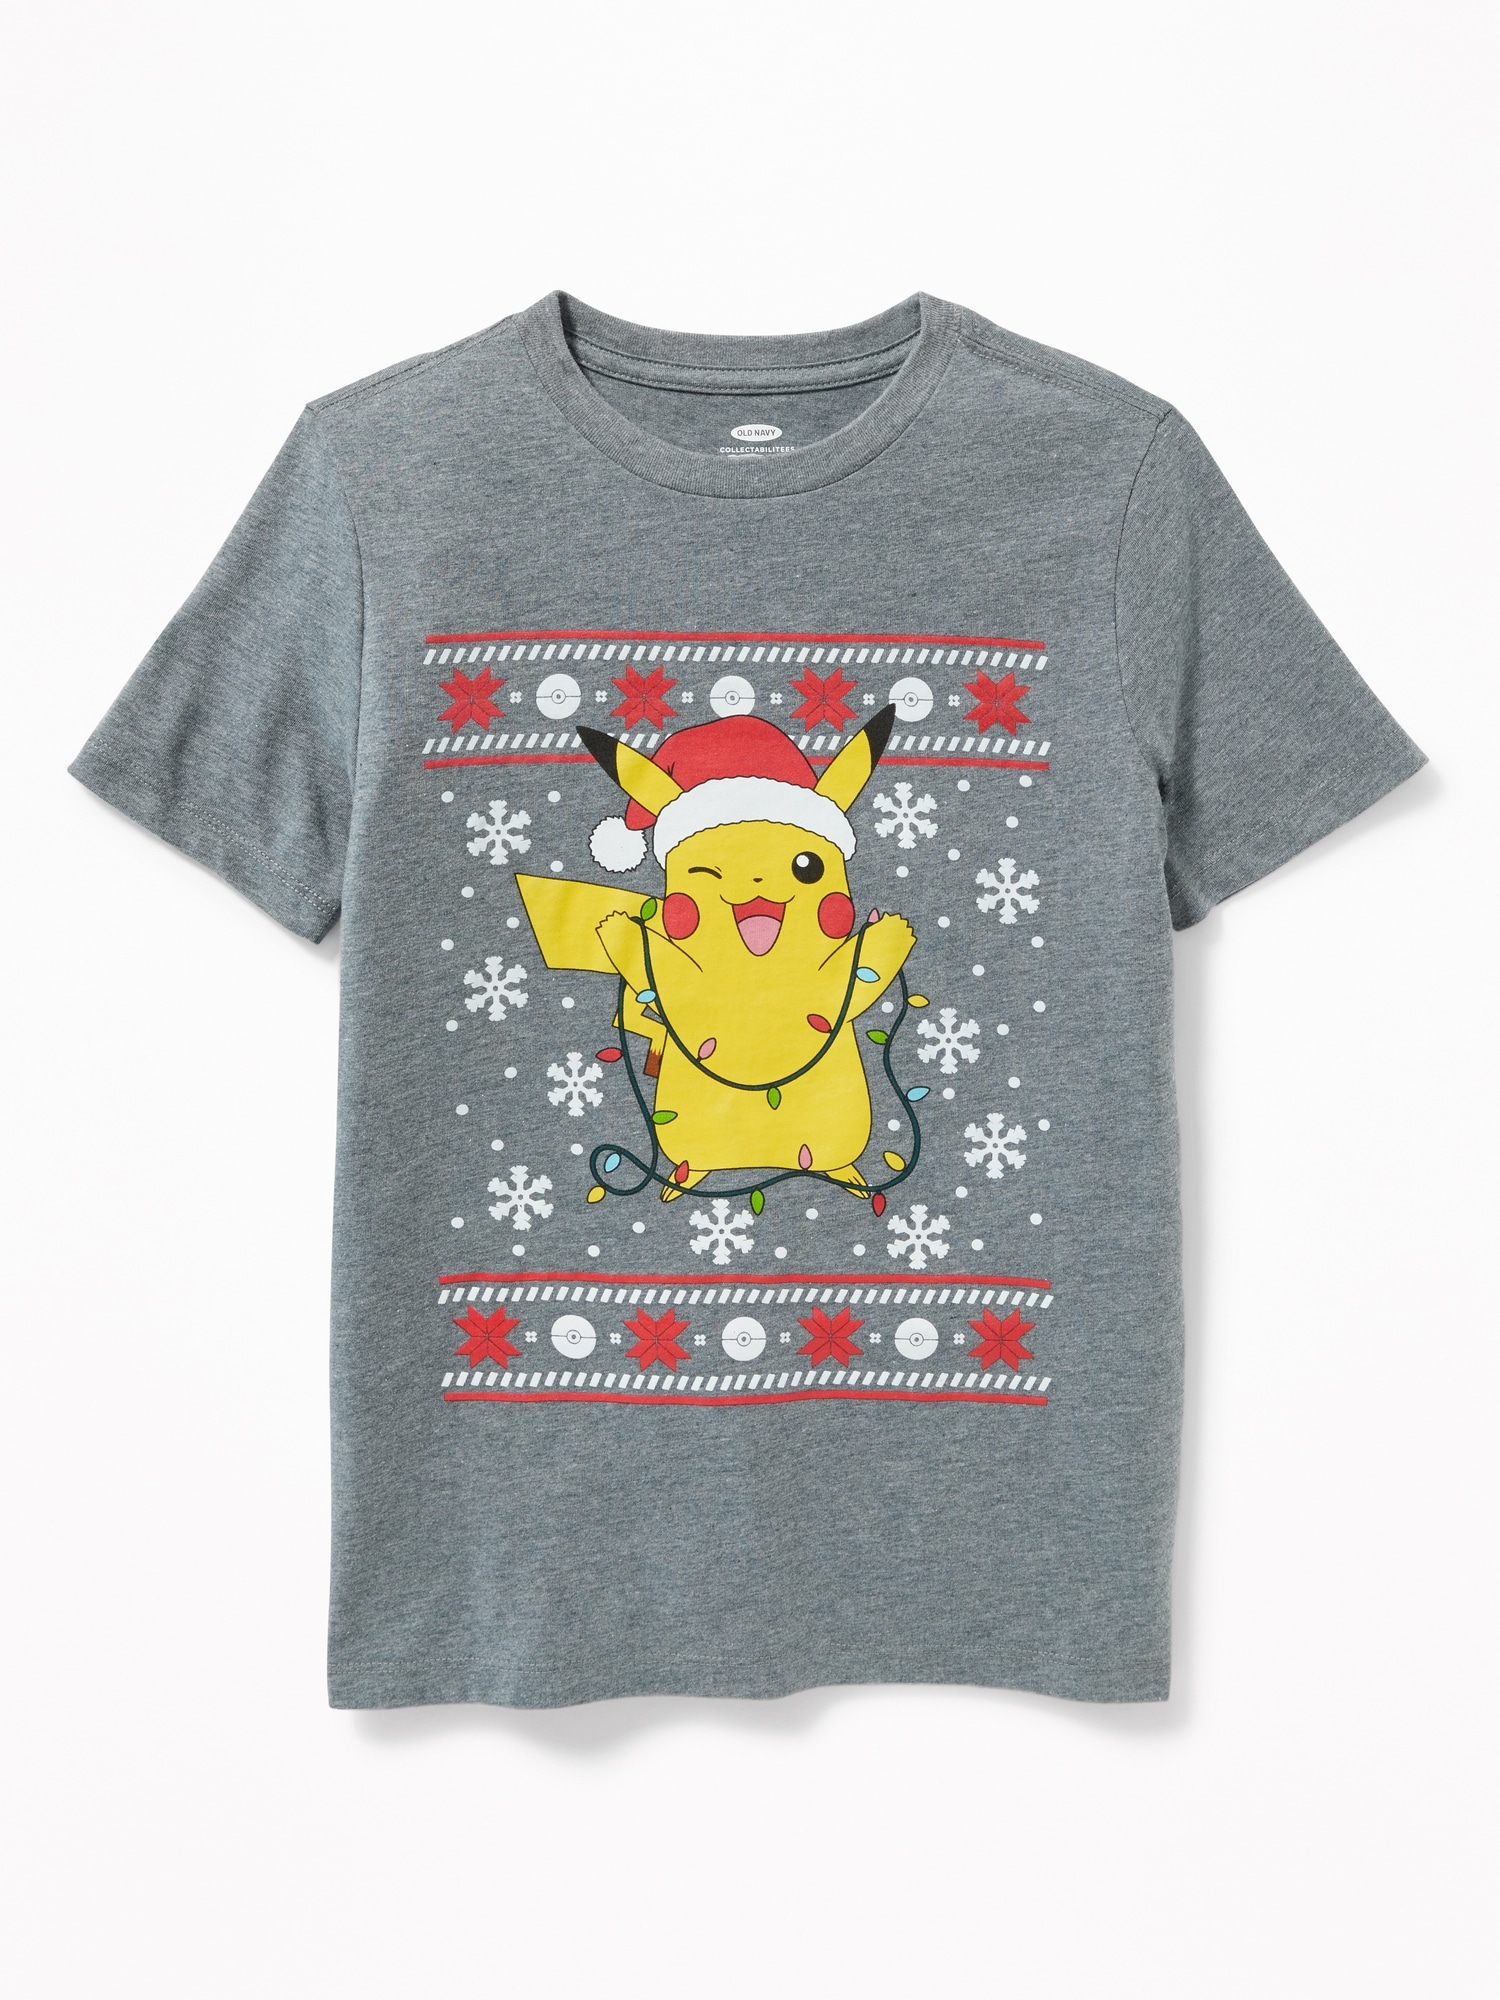 Pokémon ™ Pikachu Christmas Tee for Boys | Old Navy